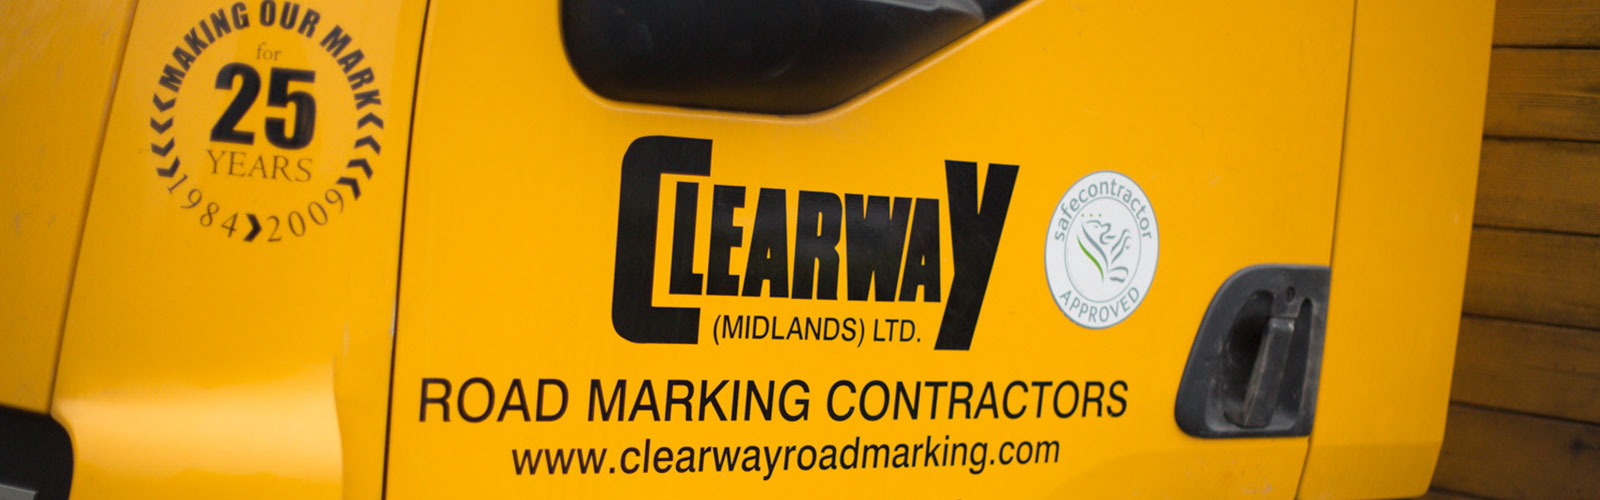 Clearway Midlands logo on van